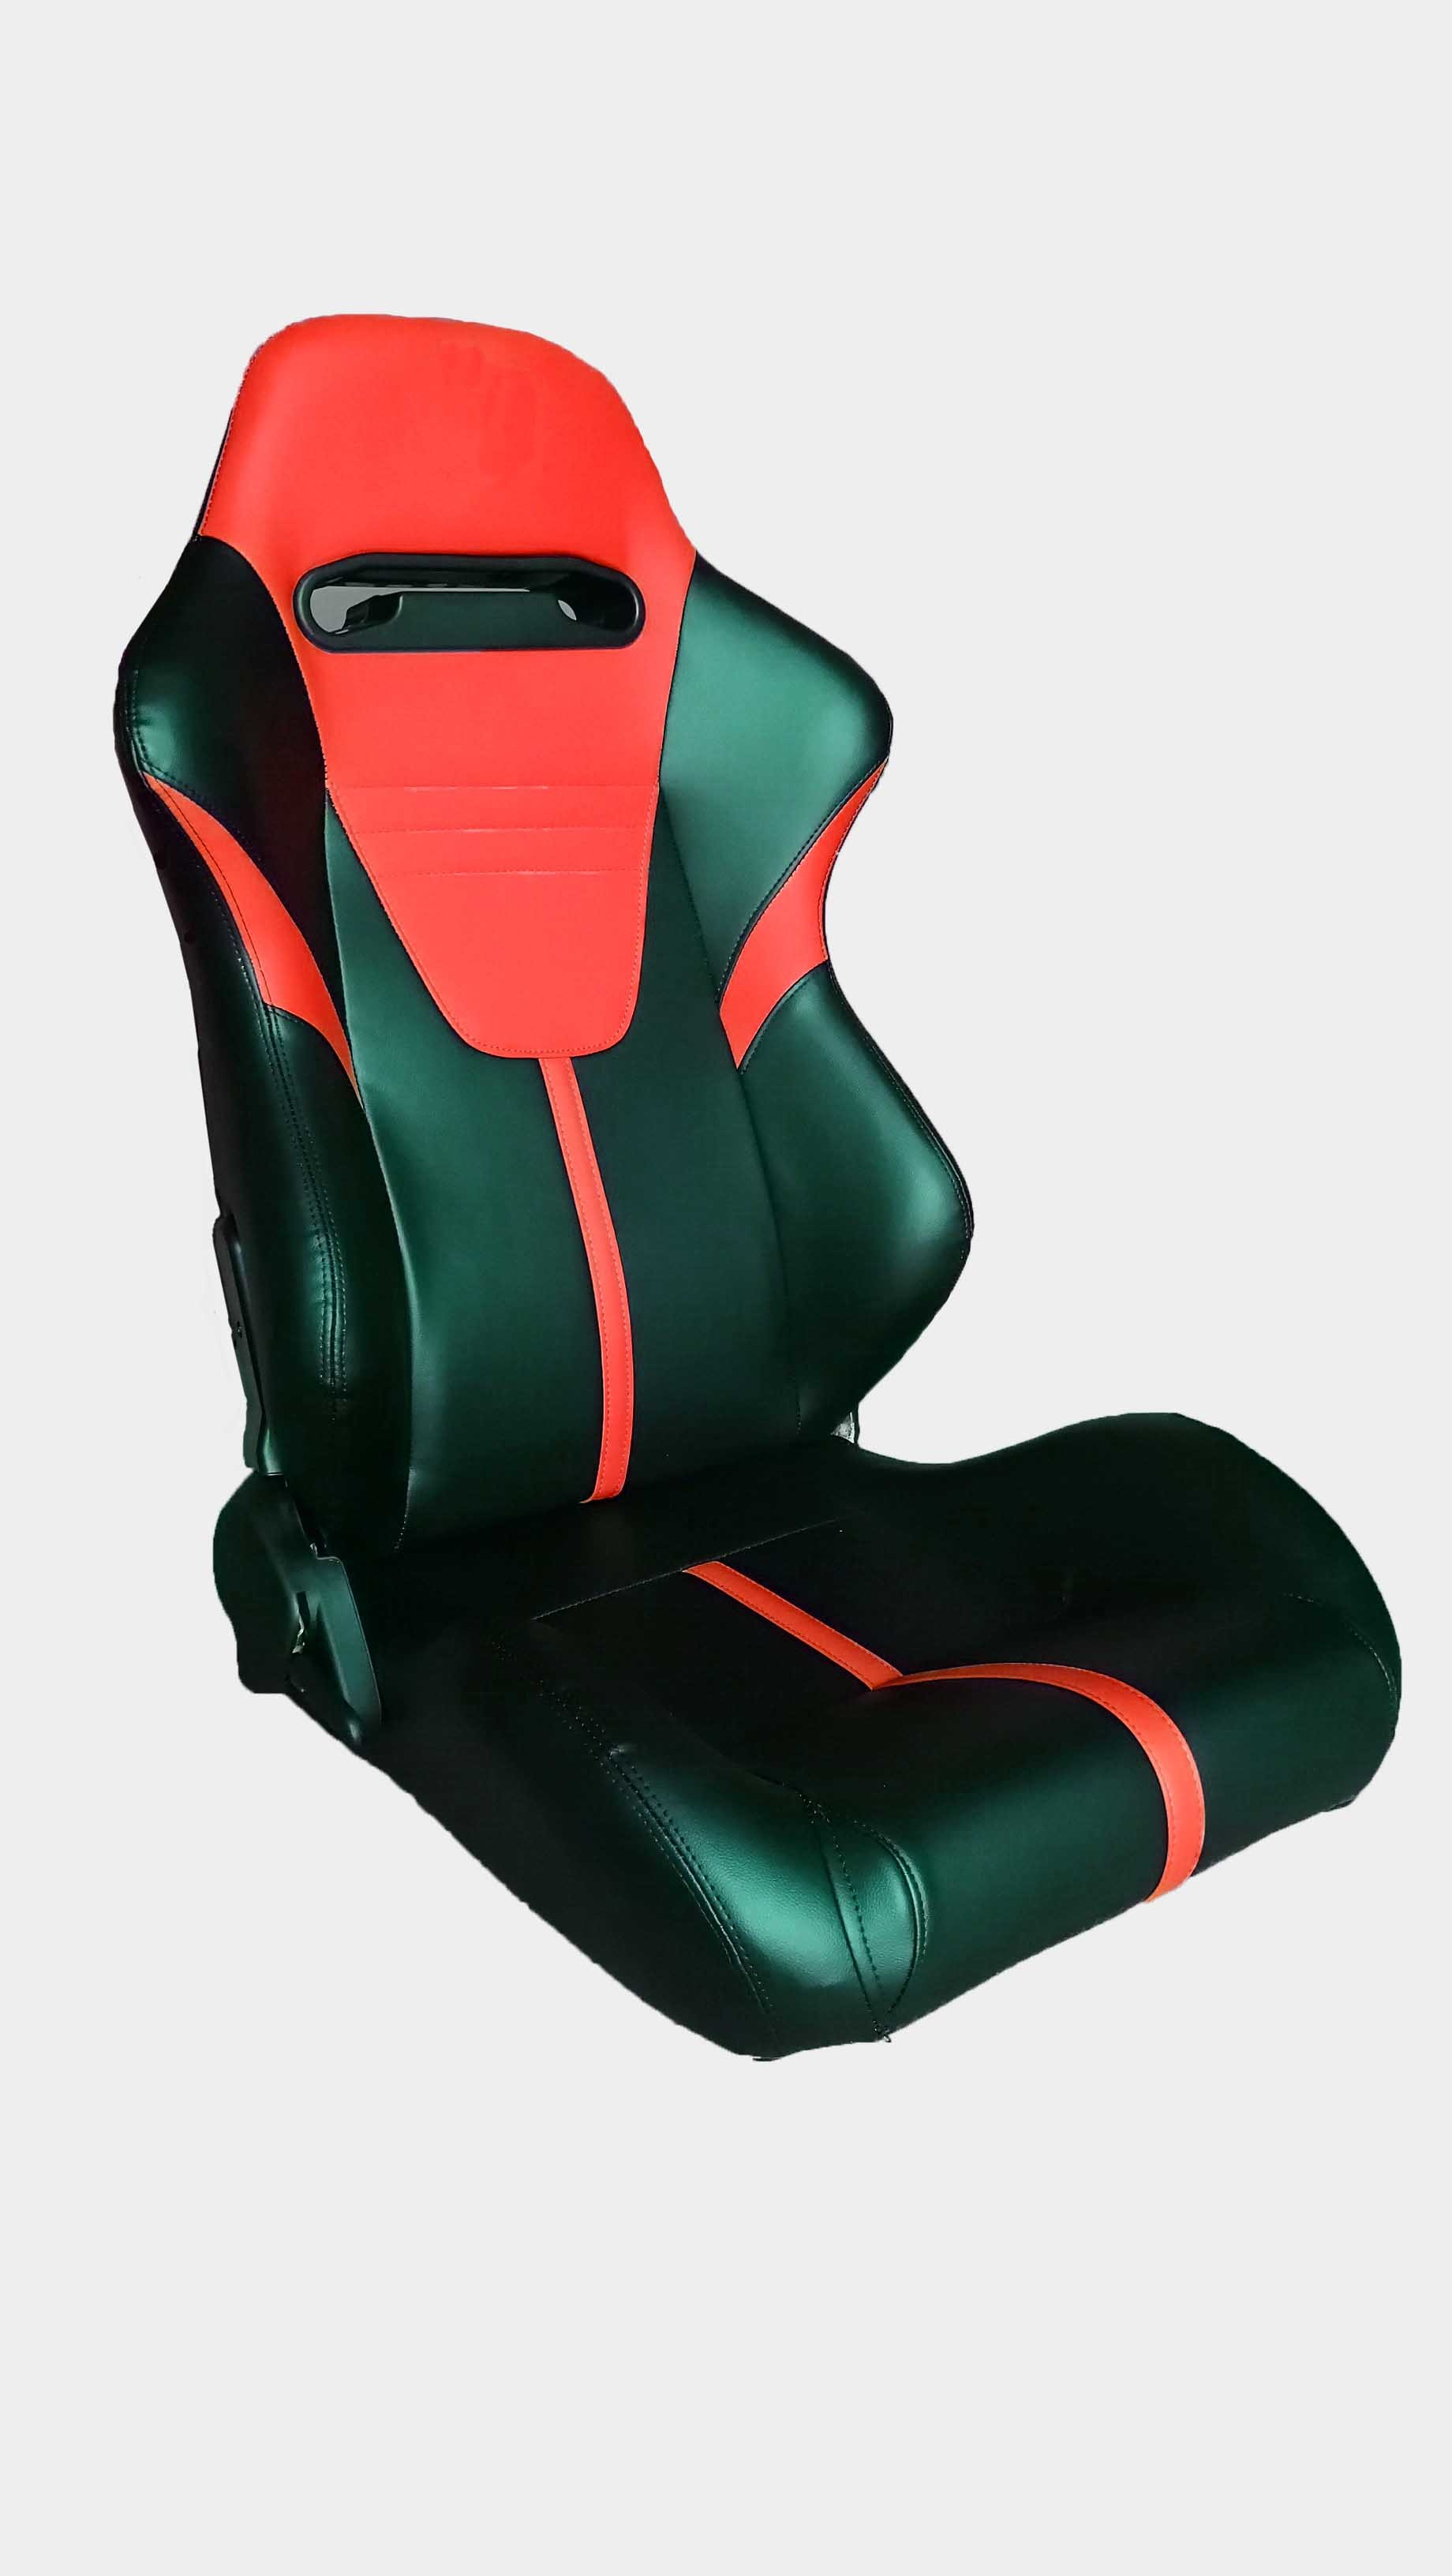 Personalized Reclining Racing Seats , Adjustable Bucket Seats For Automobile